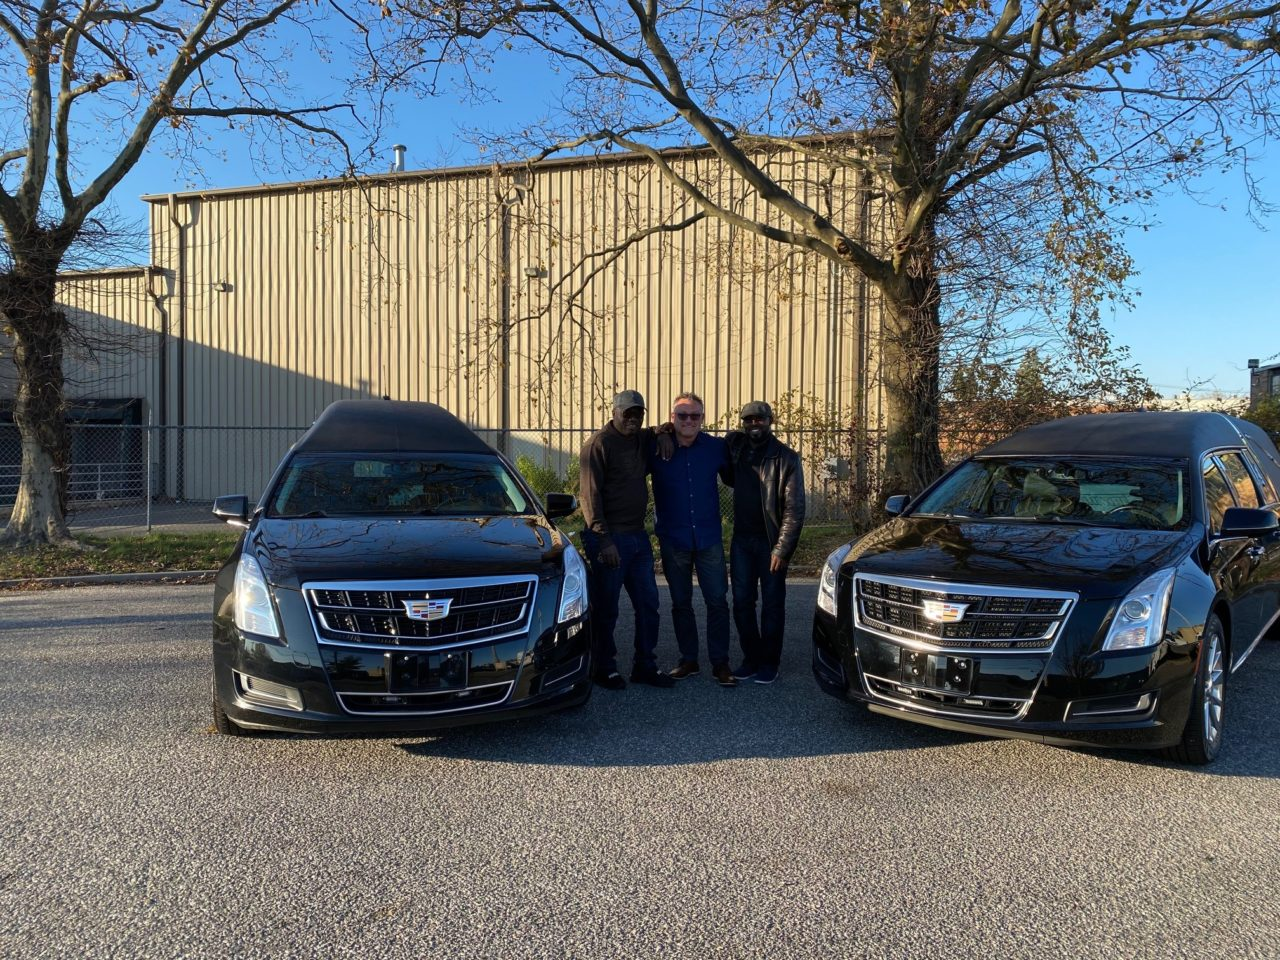 New Delivery: TWO 2016 Cadillac Funeral Hearses Delivered to Kumasi, Ghana